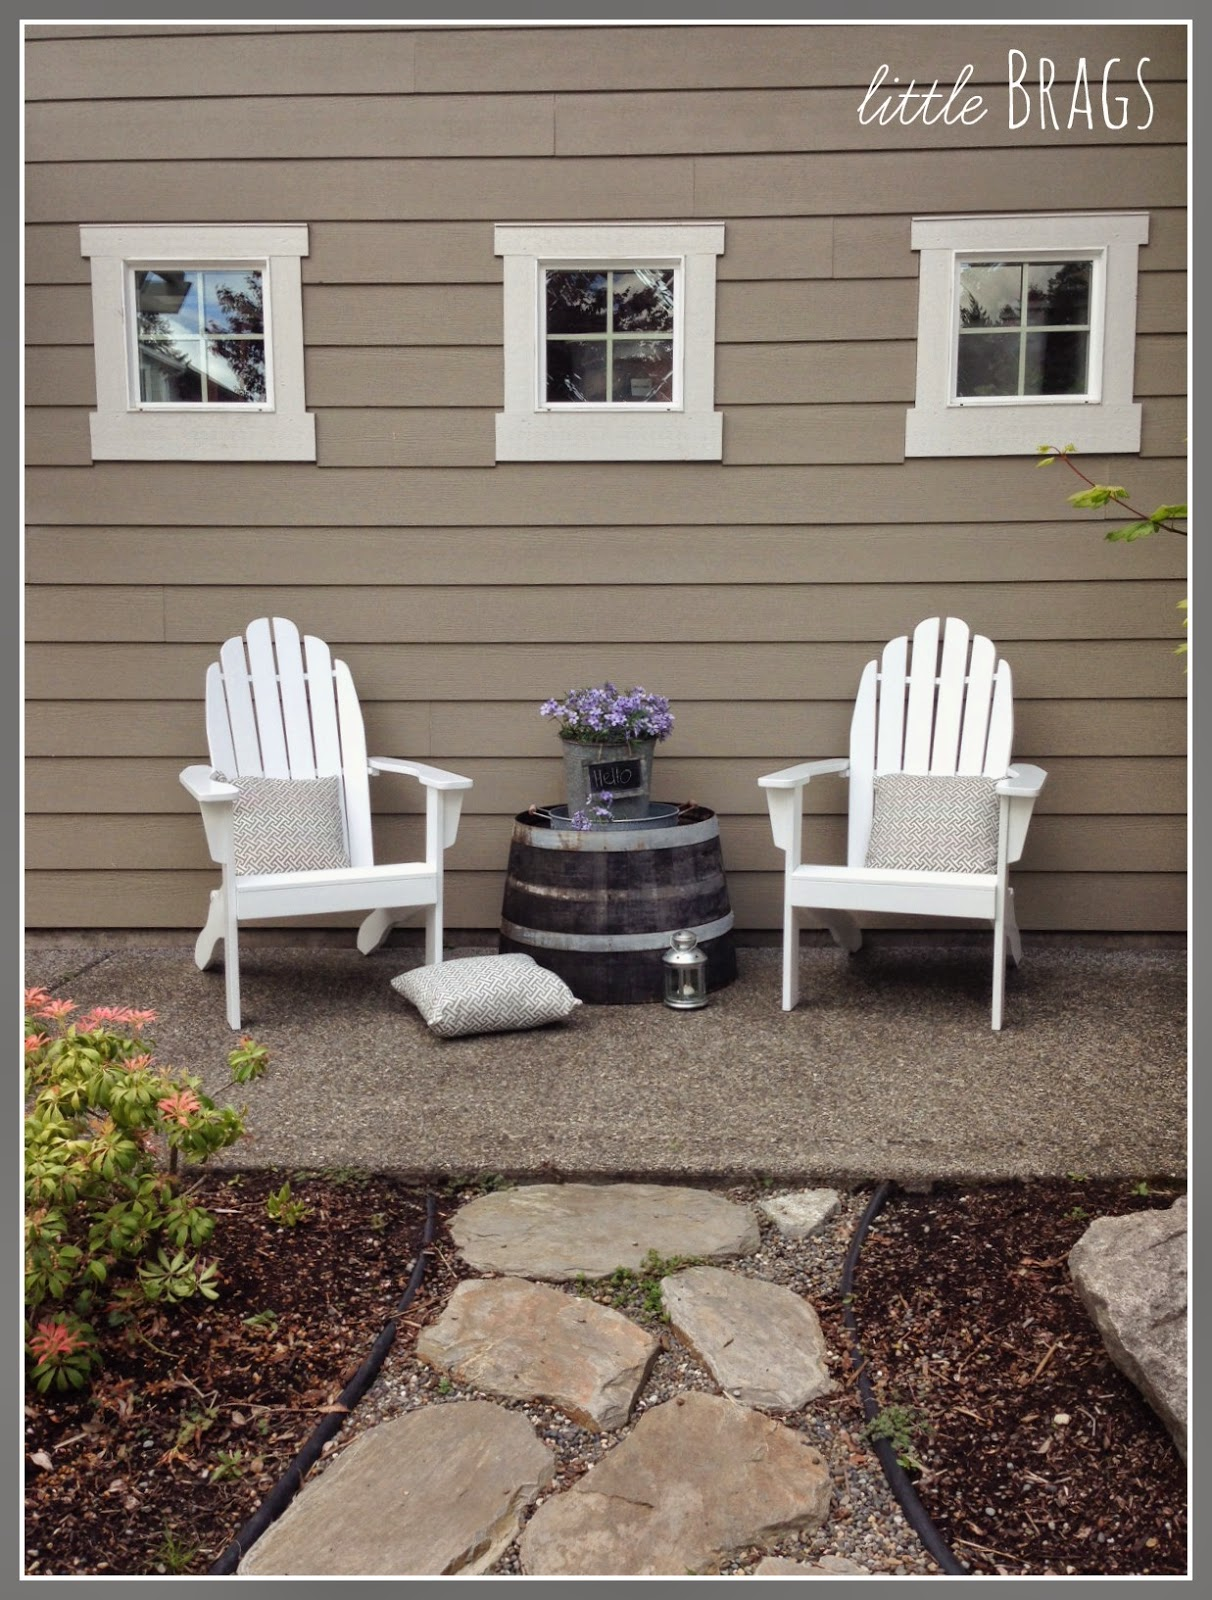 Showing Off My New Adirondack Chairs From World Market